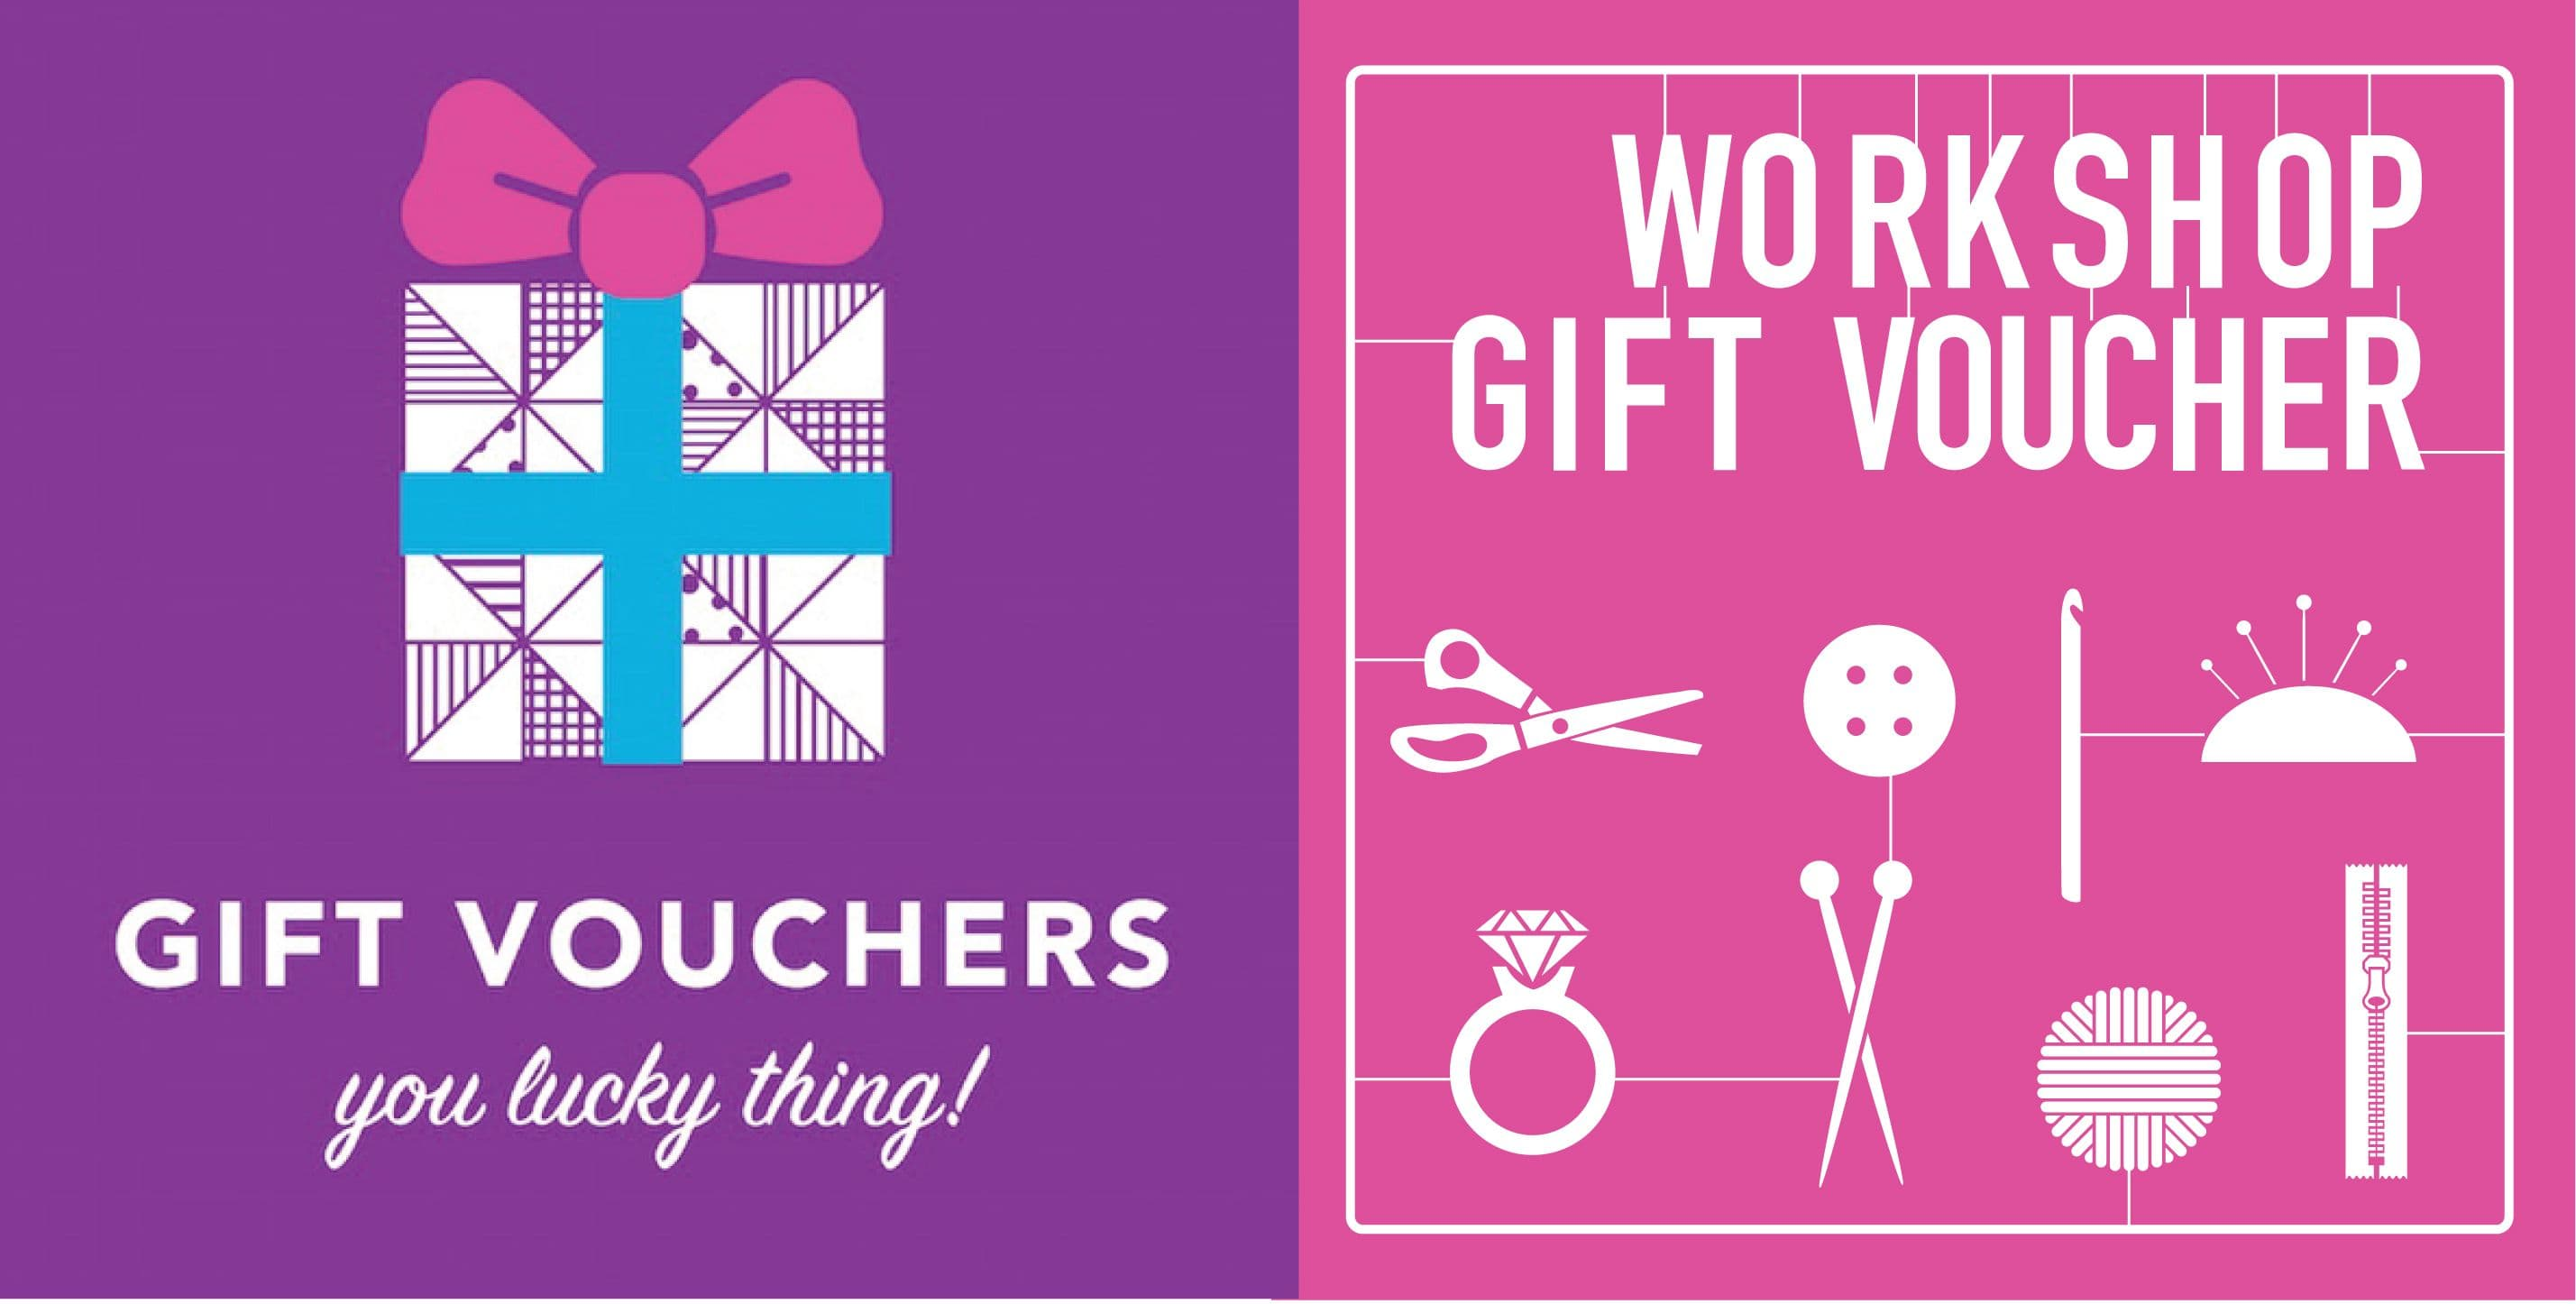 Gift a workshop